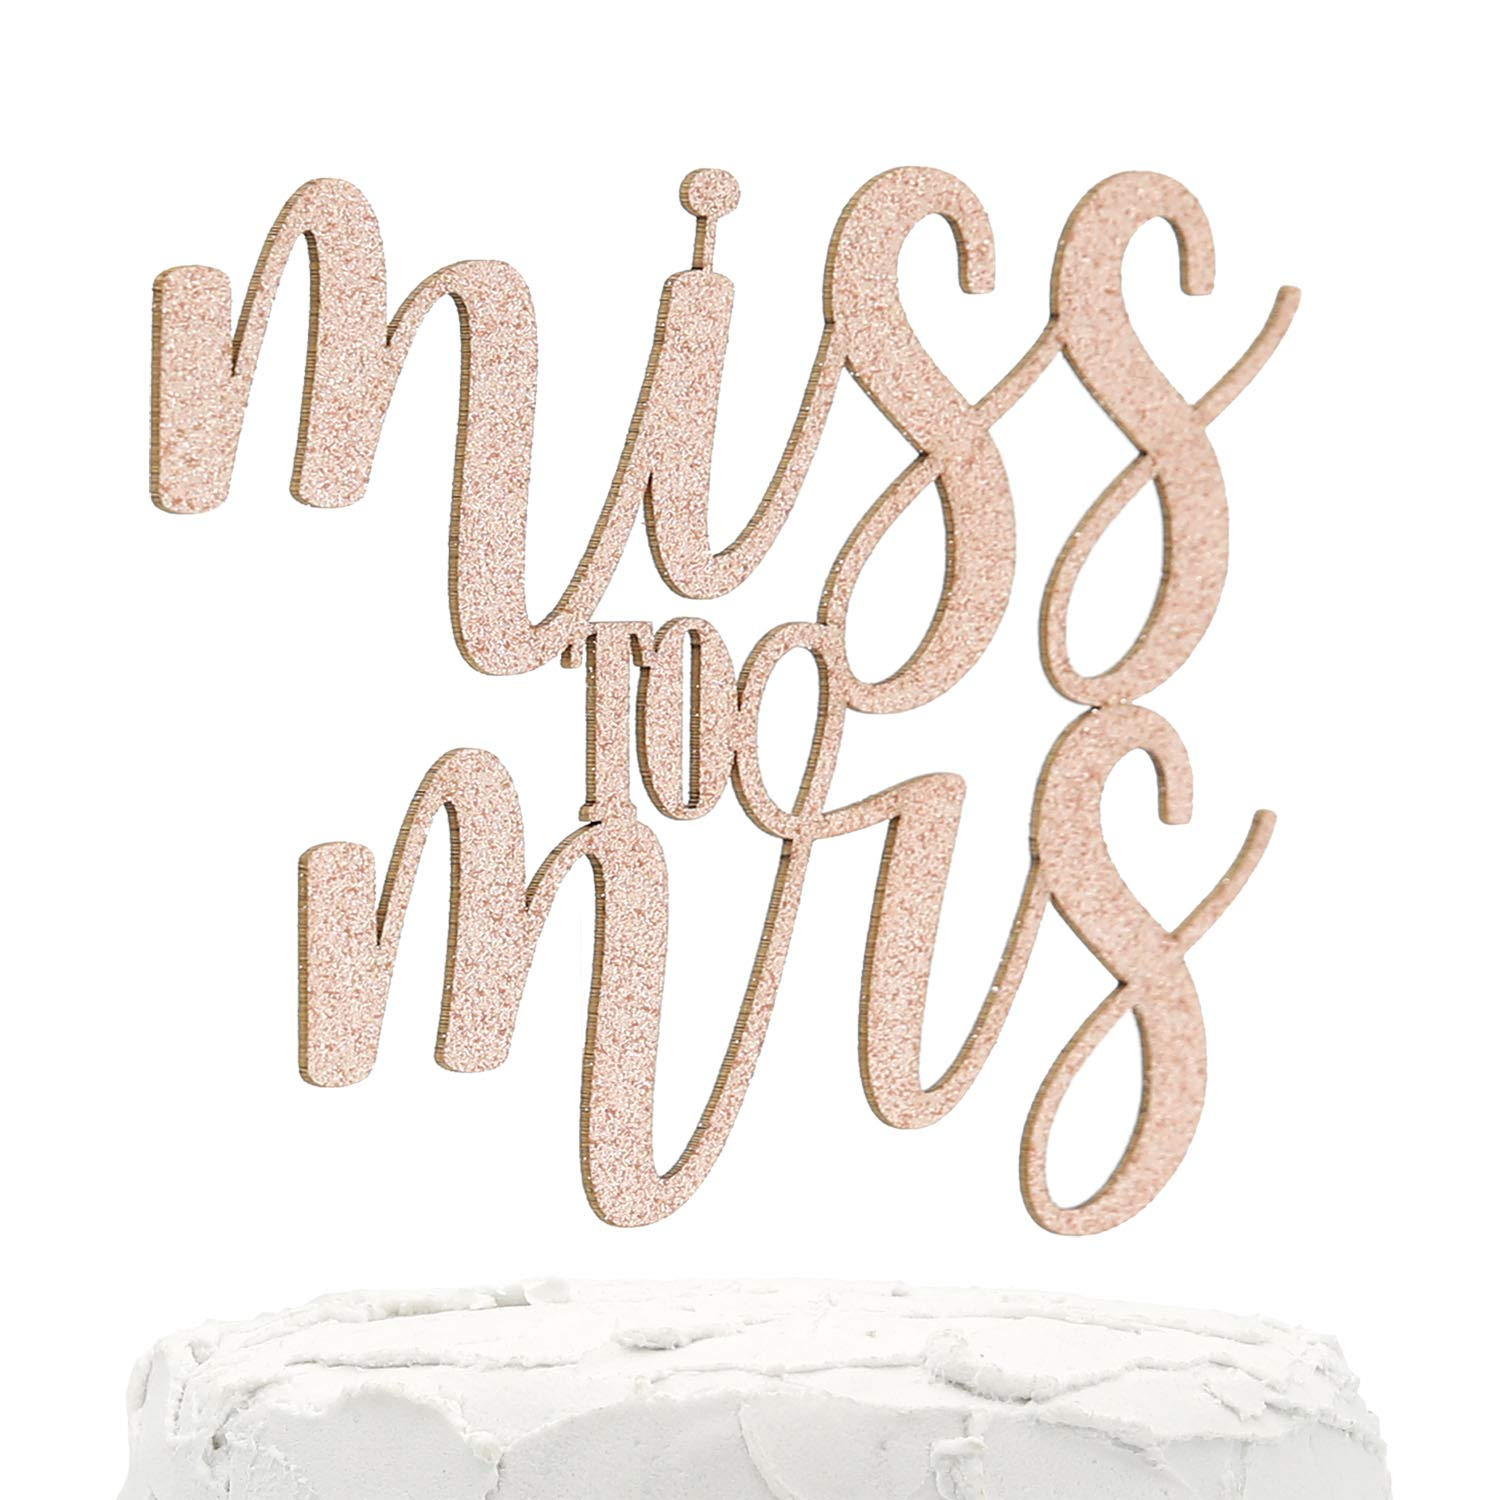 NANASUKO Bachelorette Party Cake Topper - Miss to Mrs - Double Sided Rose Gold Glitter - Premium quality Made in USA